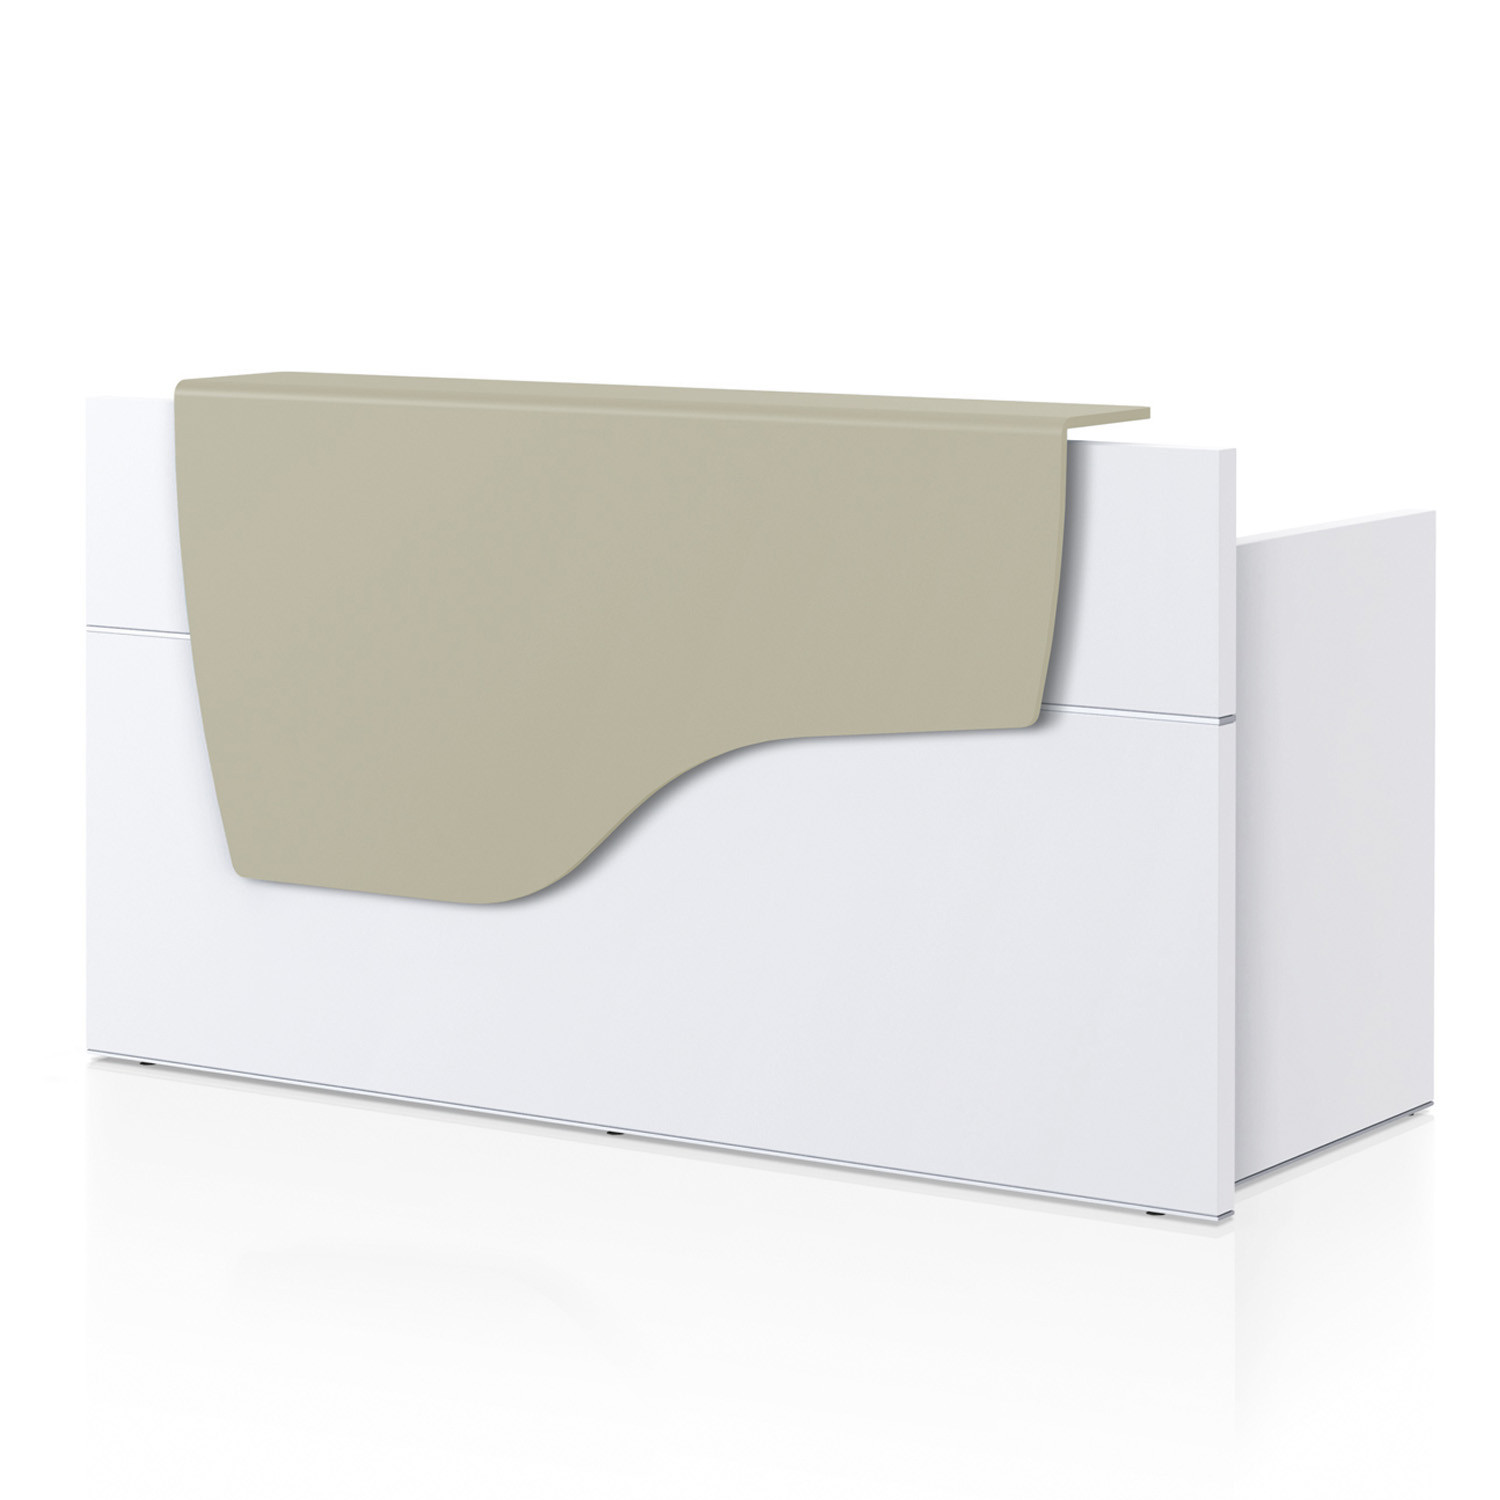 Sedus Reception Desk - Softtouch finish or leather effect are available upon request